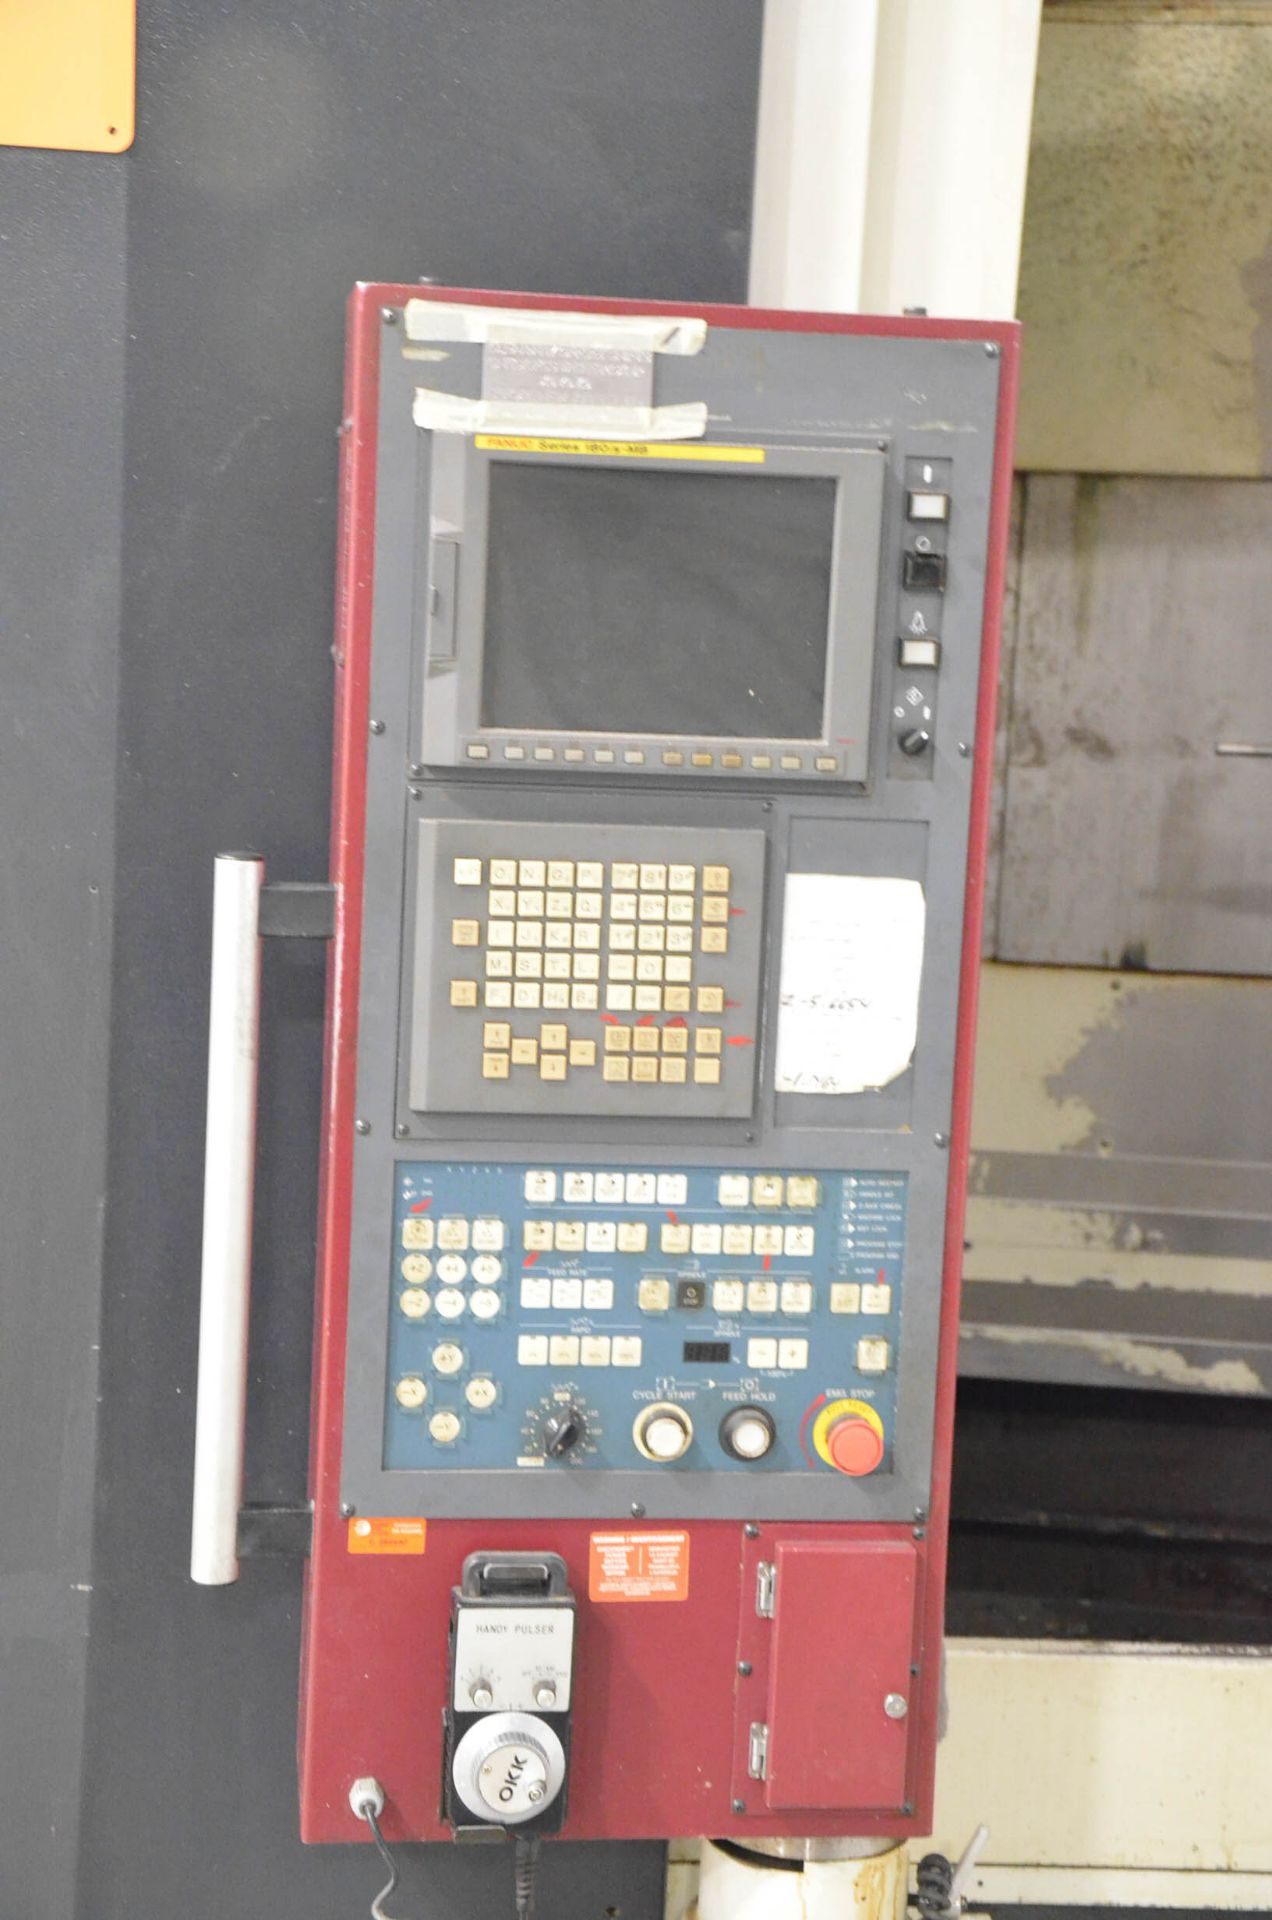 OKK (2006) HP500S TWIN-PALLET CNC HORIZONTAL MACHINING CENTER WITH FANUC 180I S-MB CNC CONTROL, 19. - Image 3 of 5